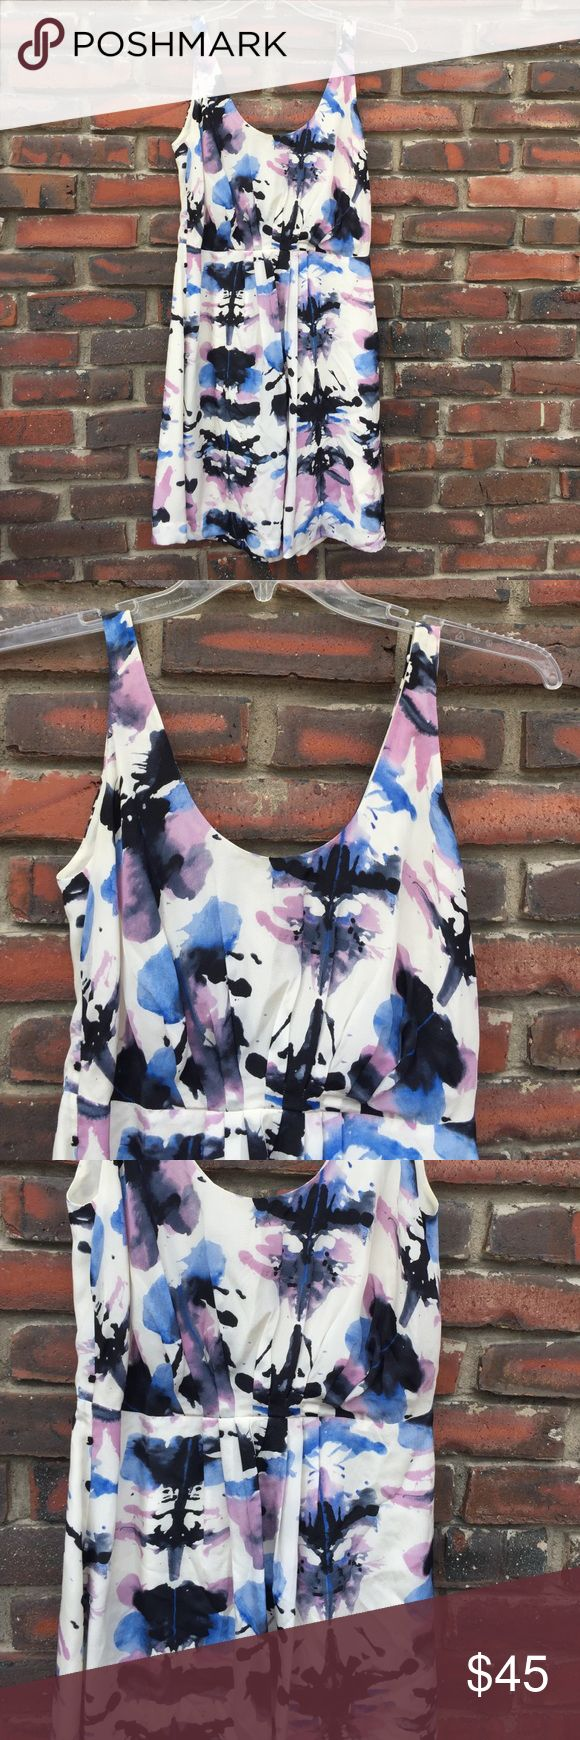 Charlotte Ronson size 2, 100% Silk Dress Charlotte Ronson, size 2, Zipper up the back, sleeveless, fully lined just a great summer dress light and airy, in orchid, black, blue and cream colored silk. Charlotte Ronson Dresses Midi